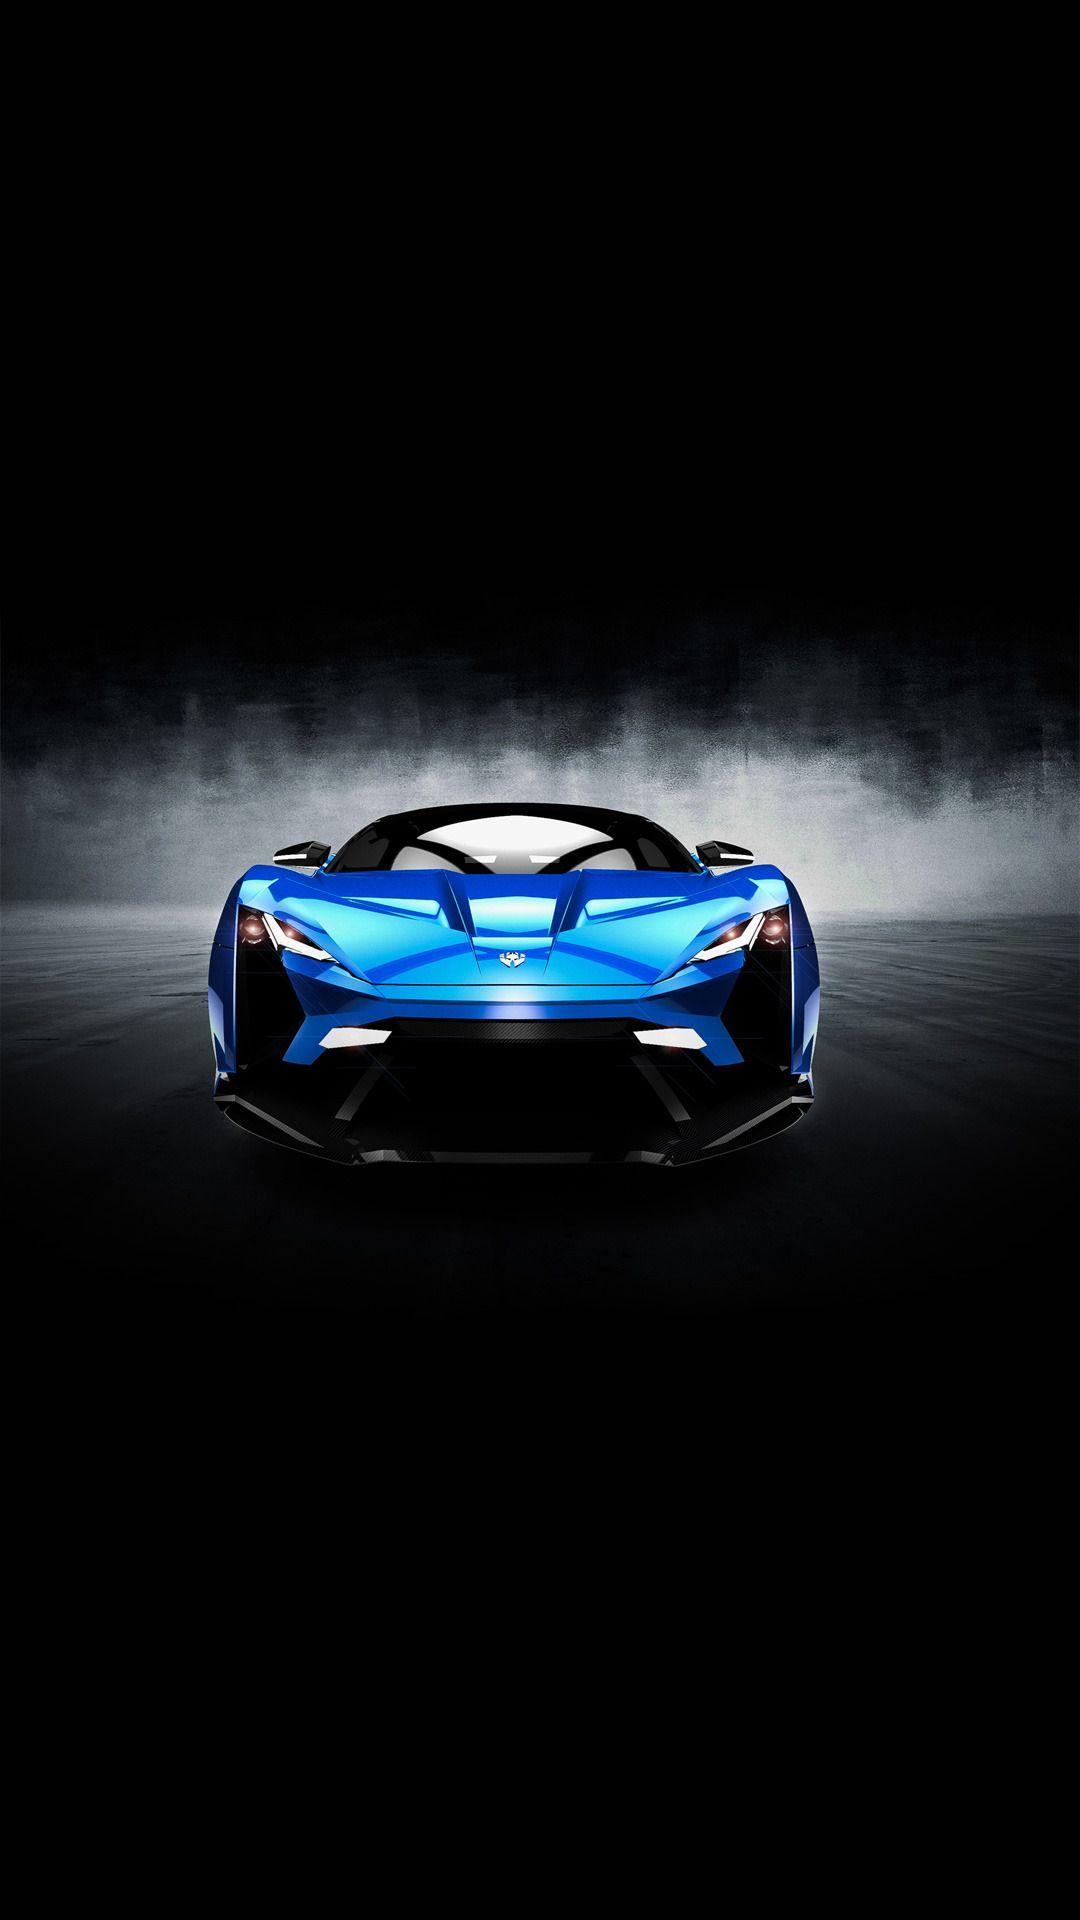 Cool Car Mobile Hd Wallpapers Wallpaper Cave